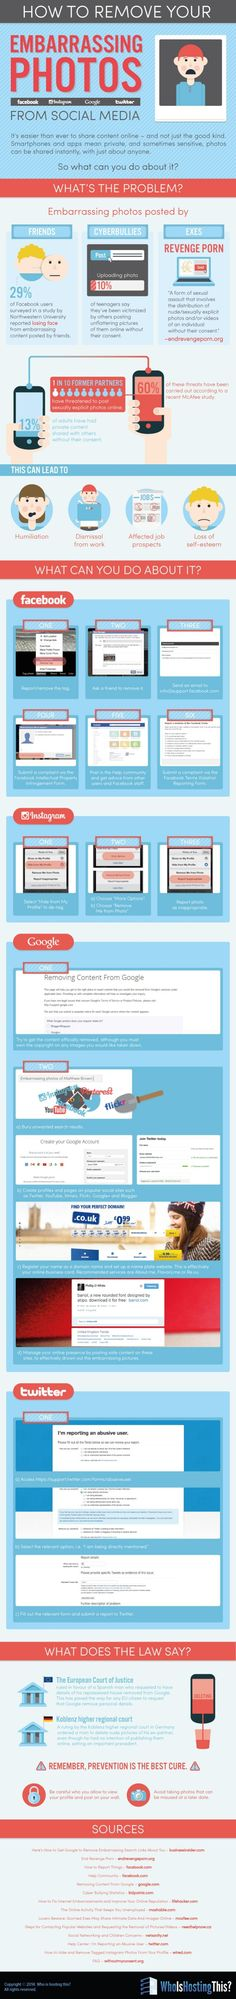 It's easier than ever to share content on social media - and not just the good kind. Smartphones and apps mean private, and sometimes sensitive, photos can be shared instantly, with just about anyone. So what can you do about it? See this handy infographic that gives the detailed information on how to completely remove your unwanted images from Google search, Facebook, Twitter and Instagram!